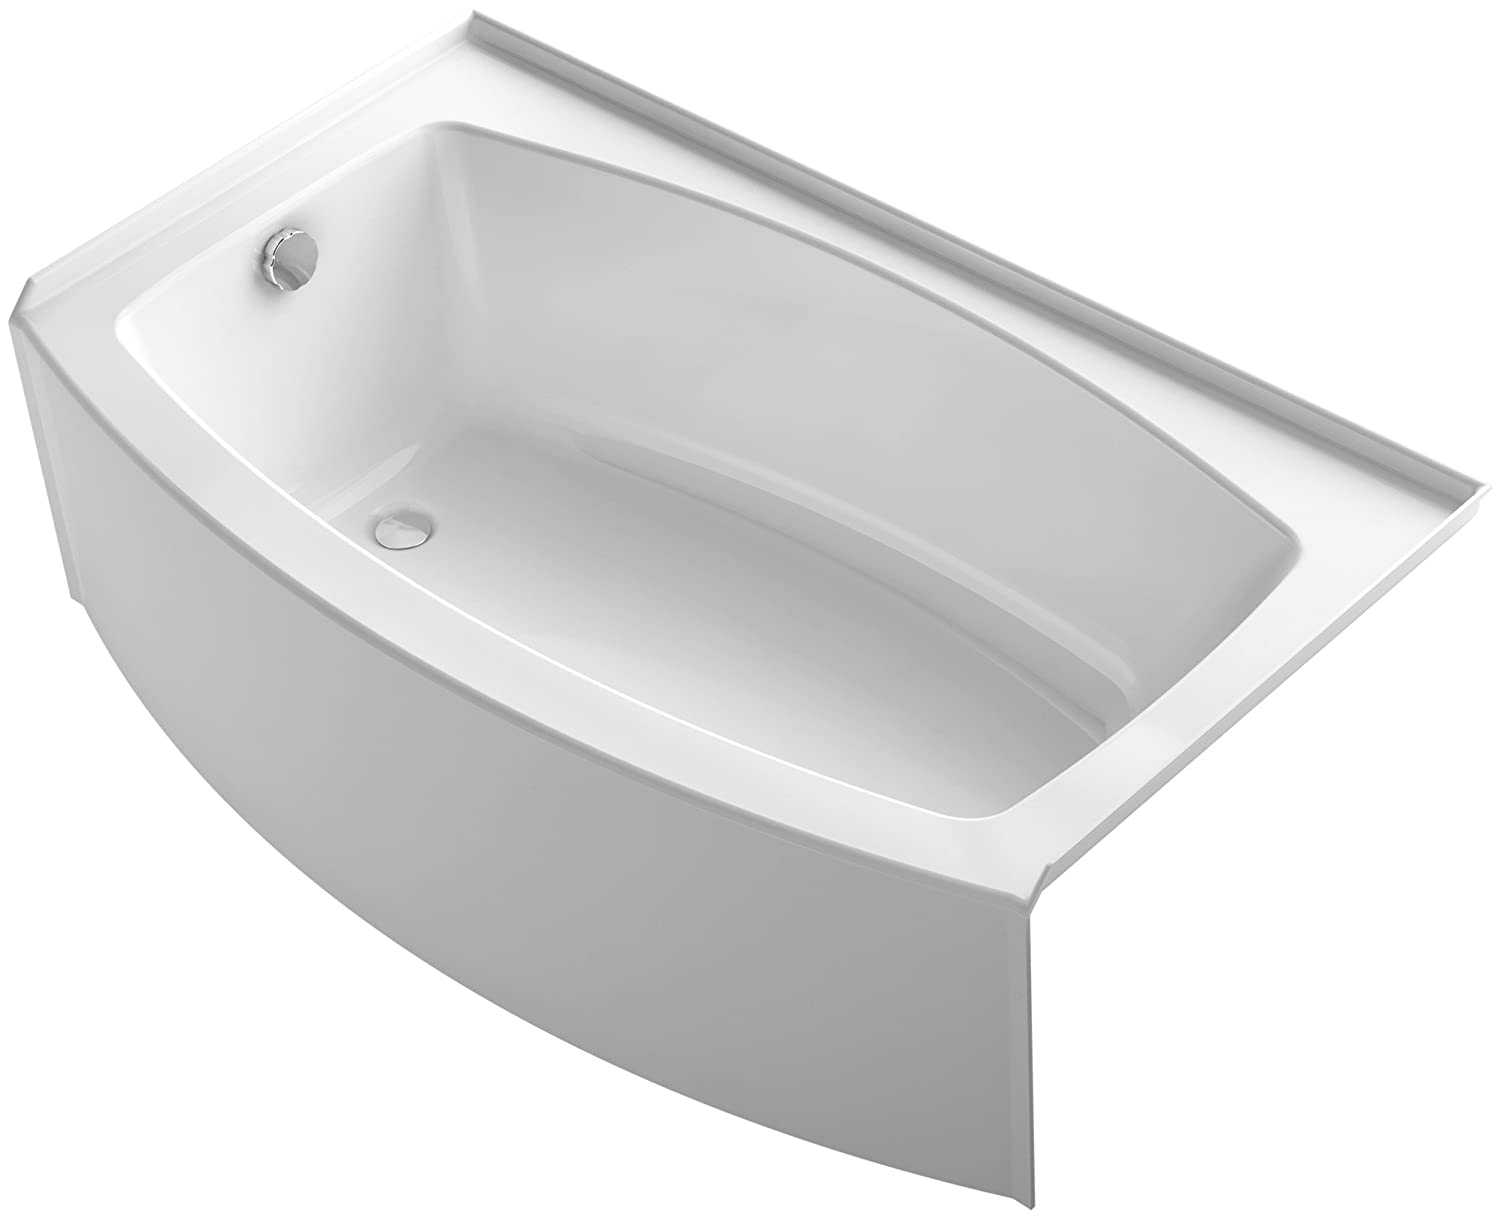 KOHLER K-1118-LA-0 Expanse 60 x 30 To 36 Curved Alcove Bath with Integral Apron, Tile Flange and Left-Hand Drain, White